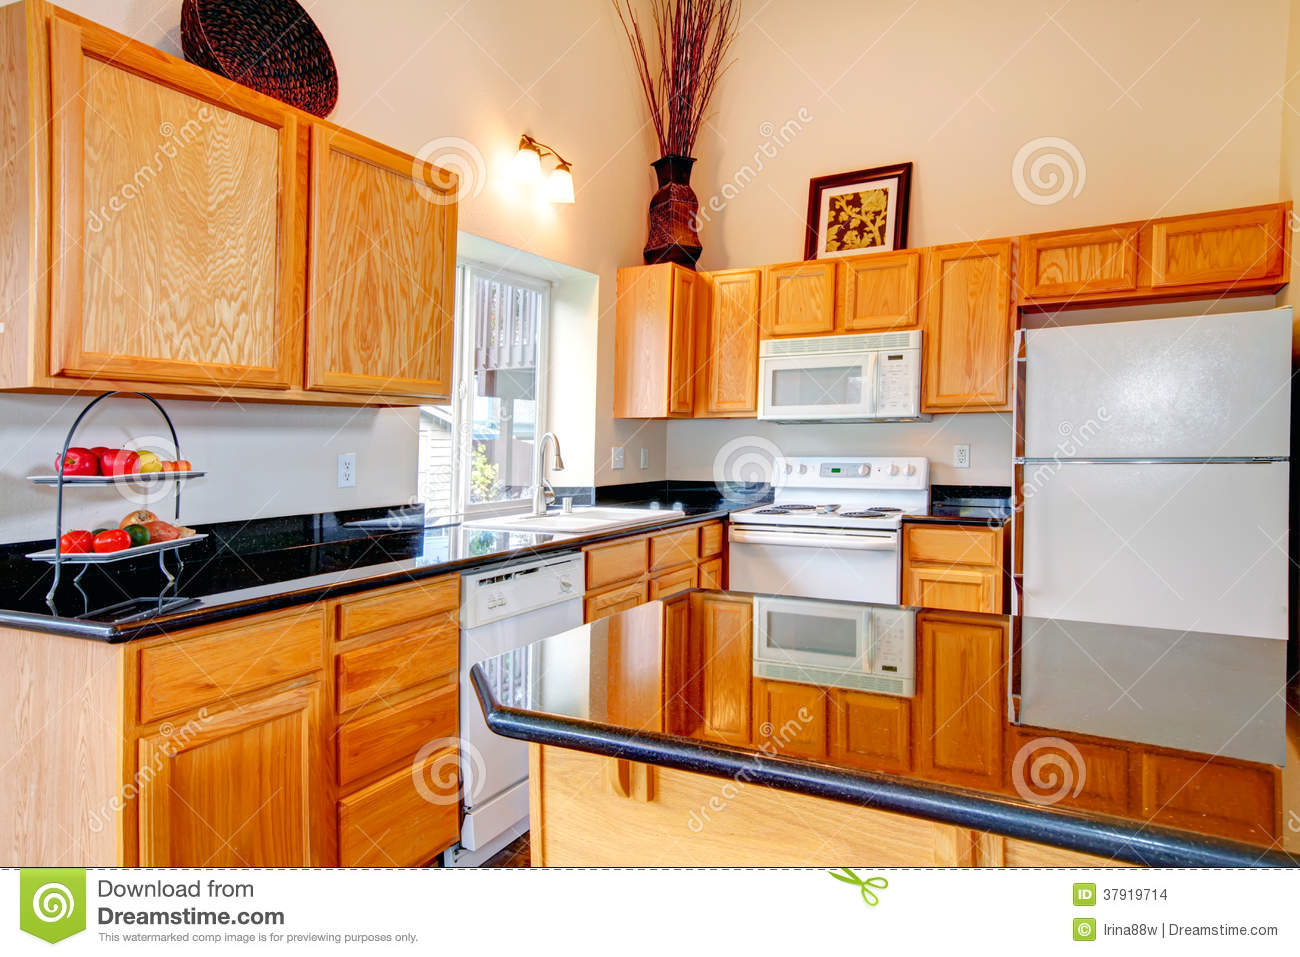 Bright cozy kitchen room stock images image 37919714 for Brown kitchen cabinets with black appliances